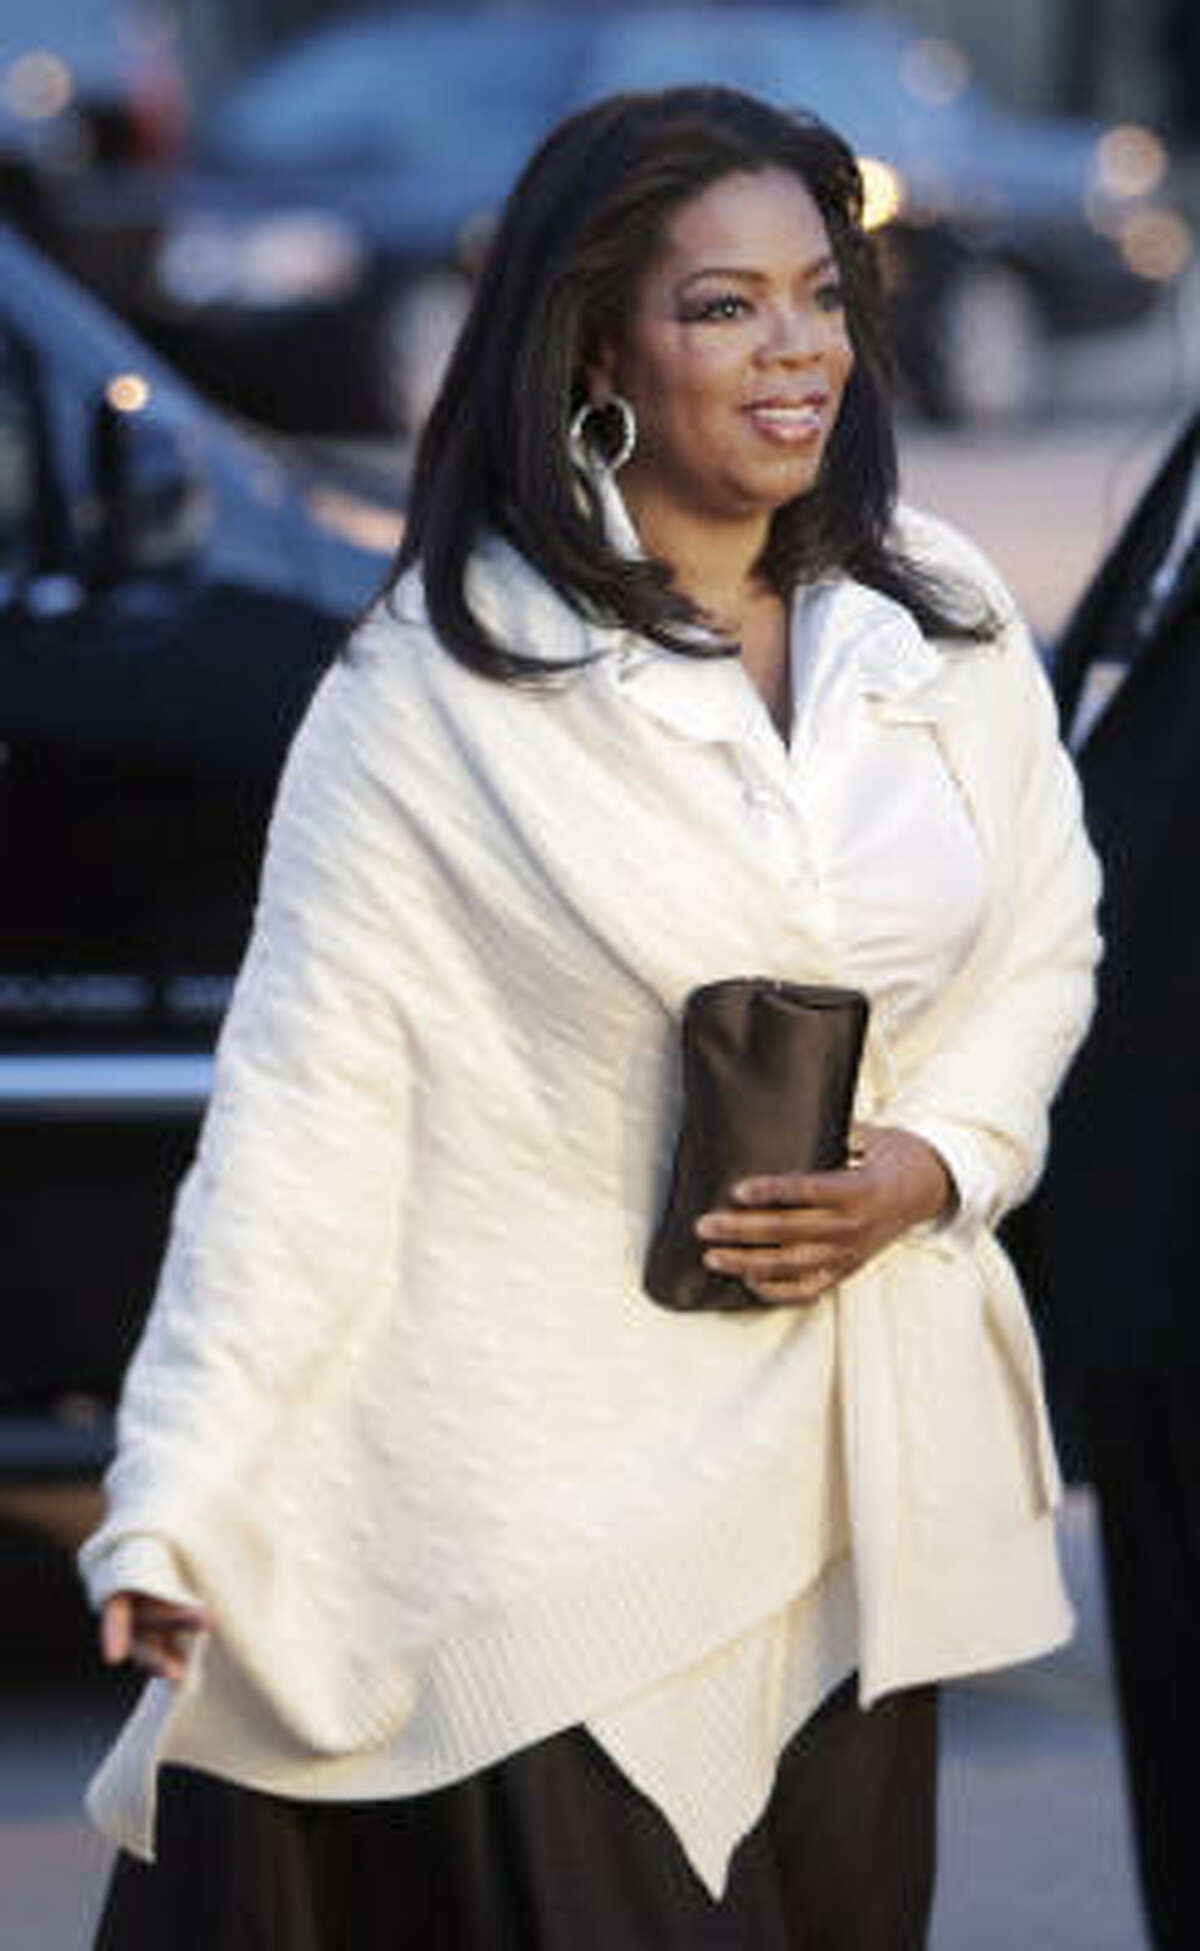 Talk show host Oprah Winfrey arrives at the Art Institute of Chicago for a dinner in honor of the International Olympic Committee's Evaluation Committee in Chicago, Monday, April 6, 2009.